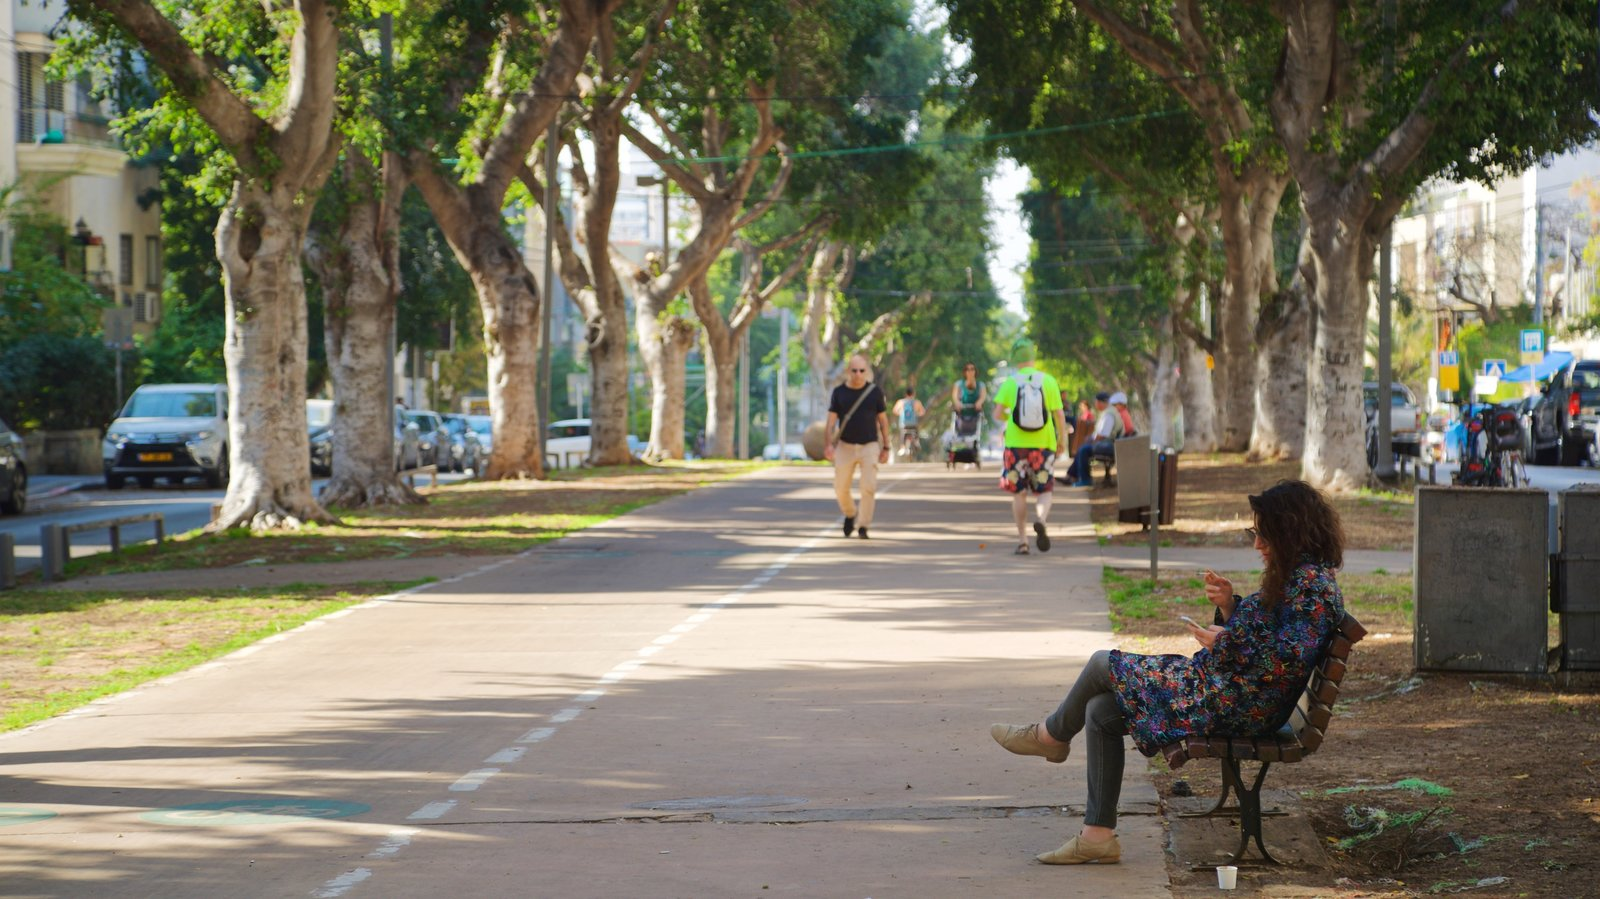 Tel Aviv showing street scenes and a park as well as an individual femail